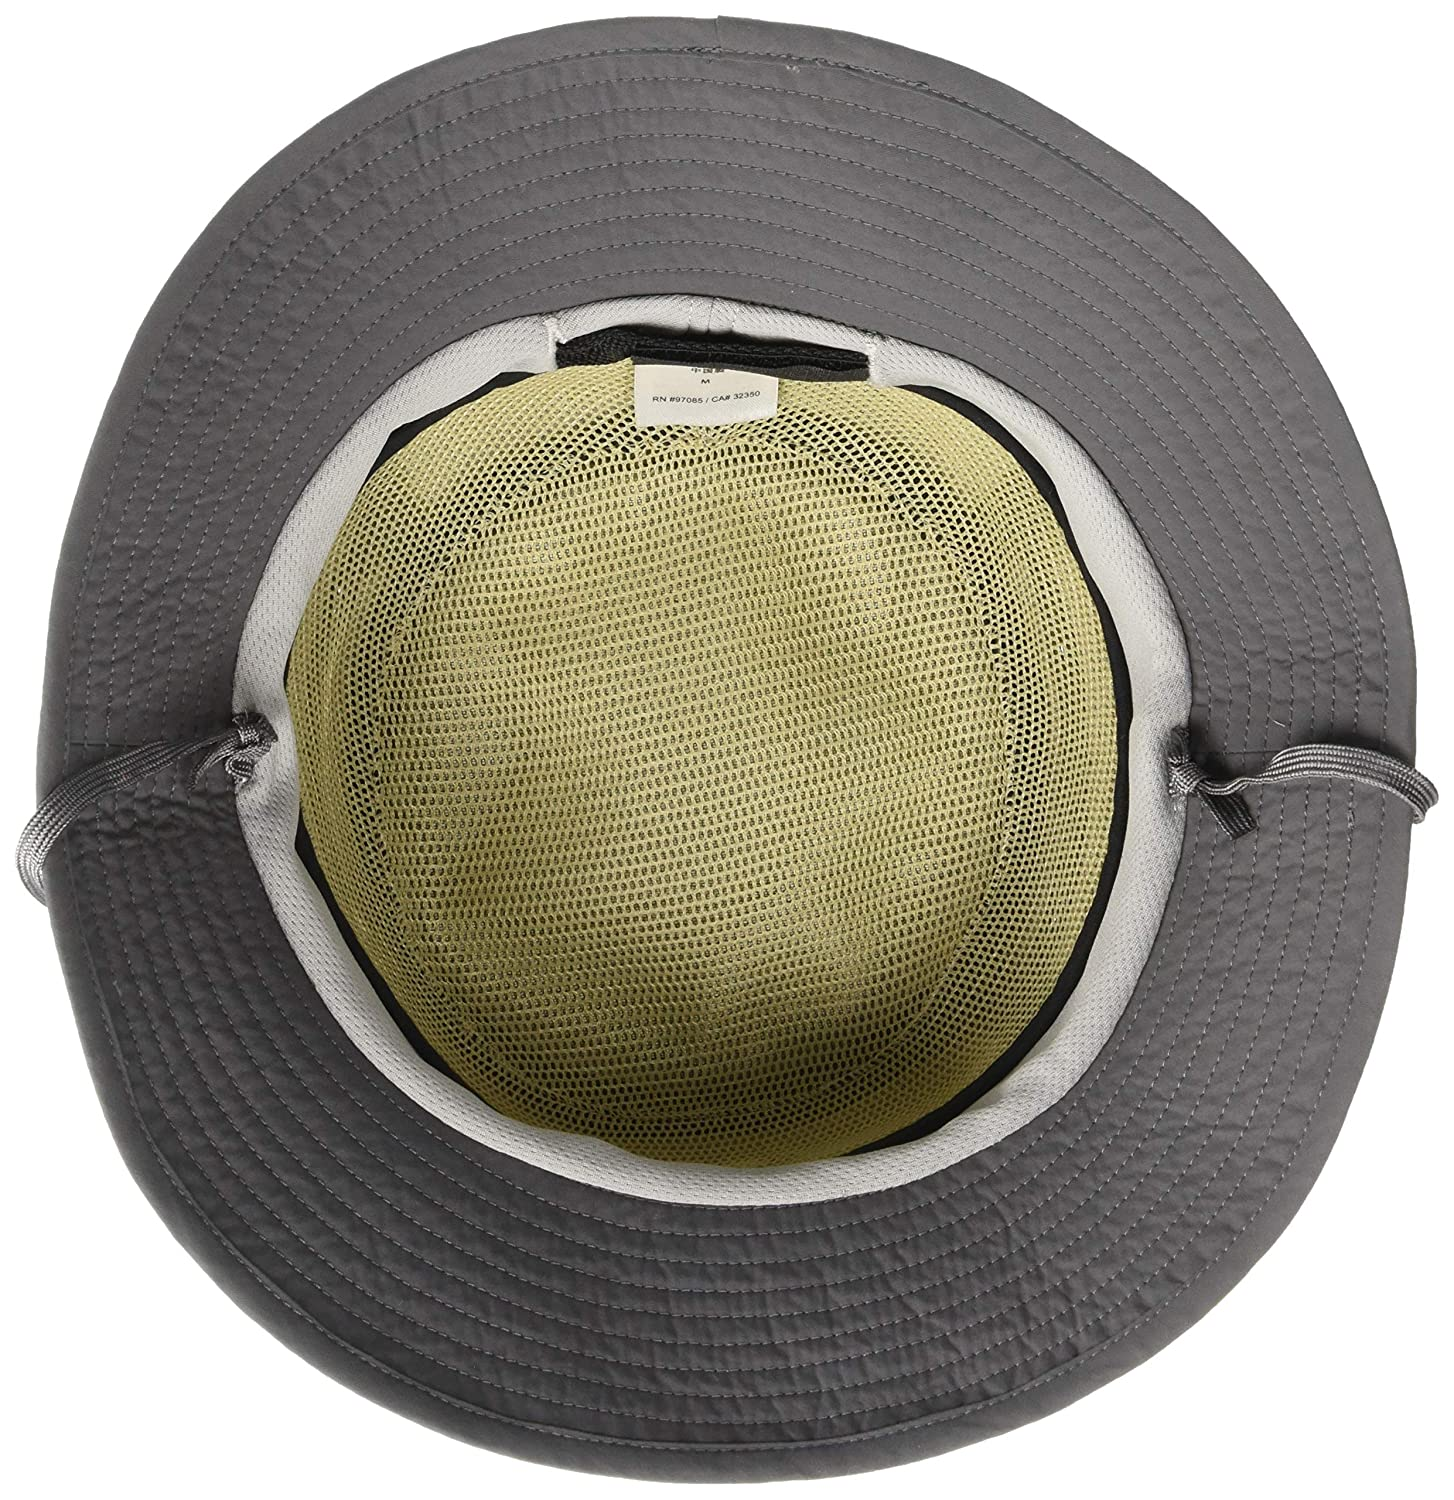 eab741d57872b Amazon.com  Outdoor Research Sombriolet Sun Hat  Clothing